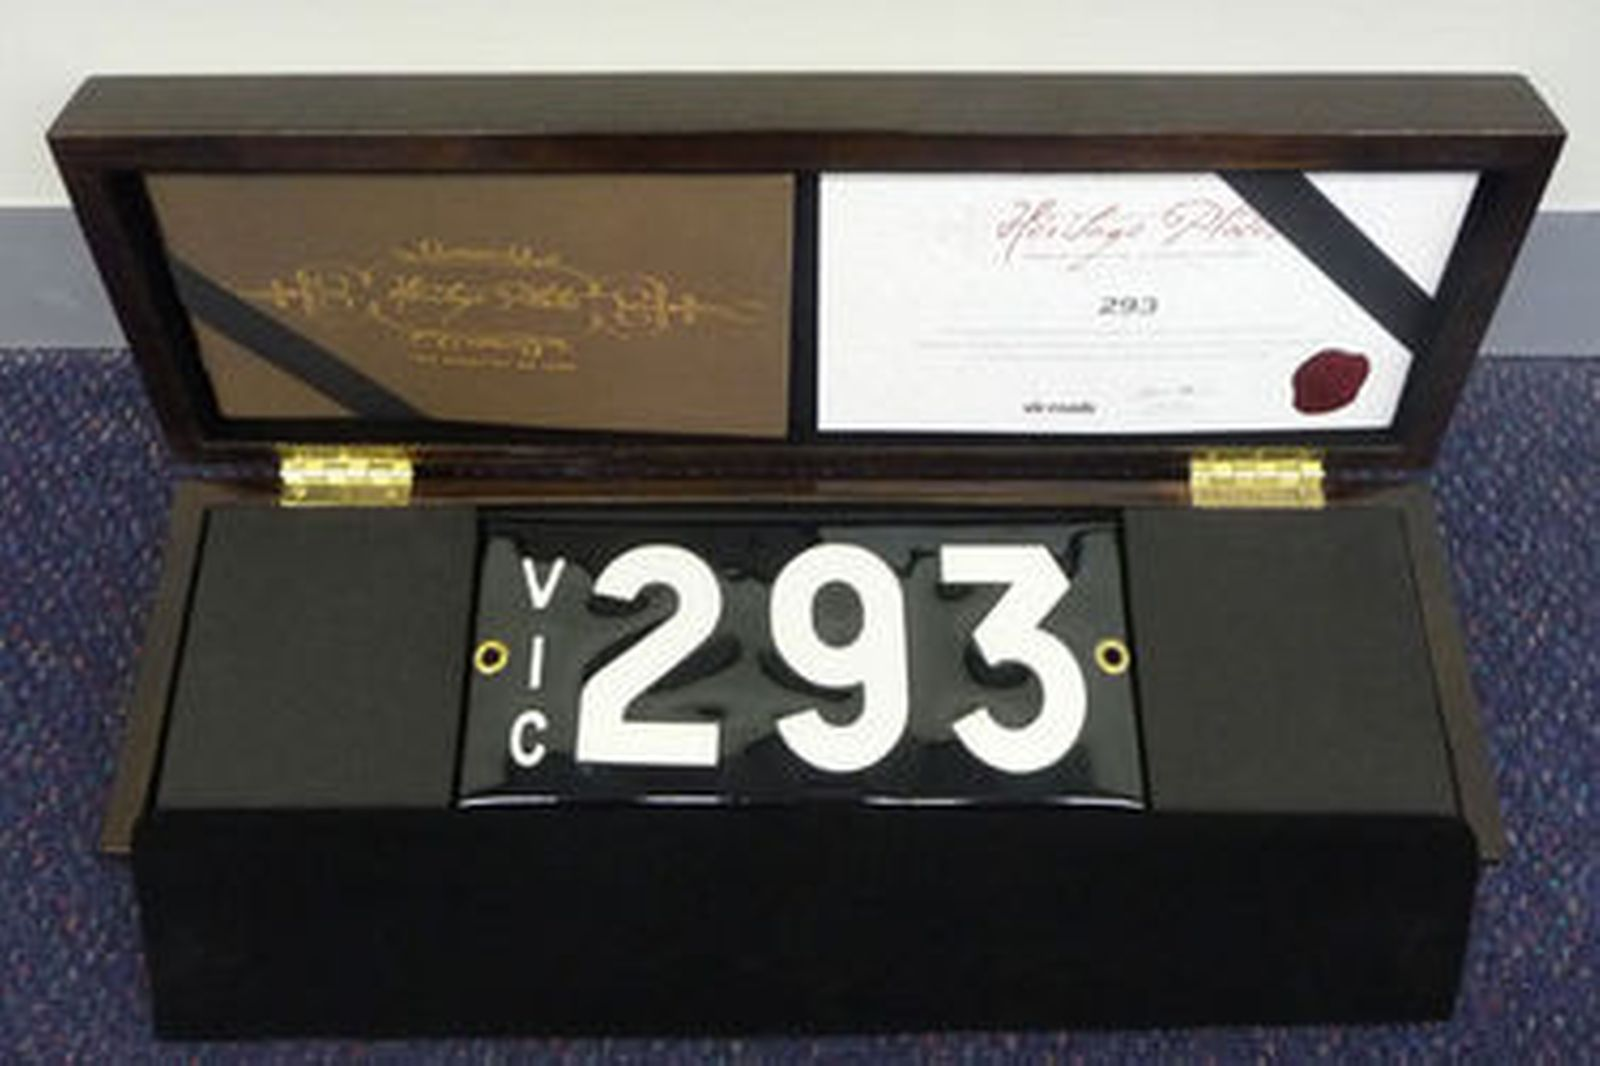 Sold: Number Plates - Victorian Numerical Plates - '293' Auctions - Lot Y -  Shannons